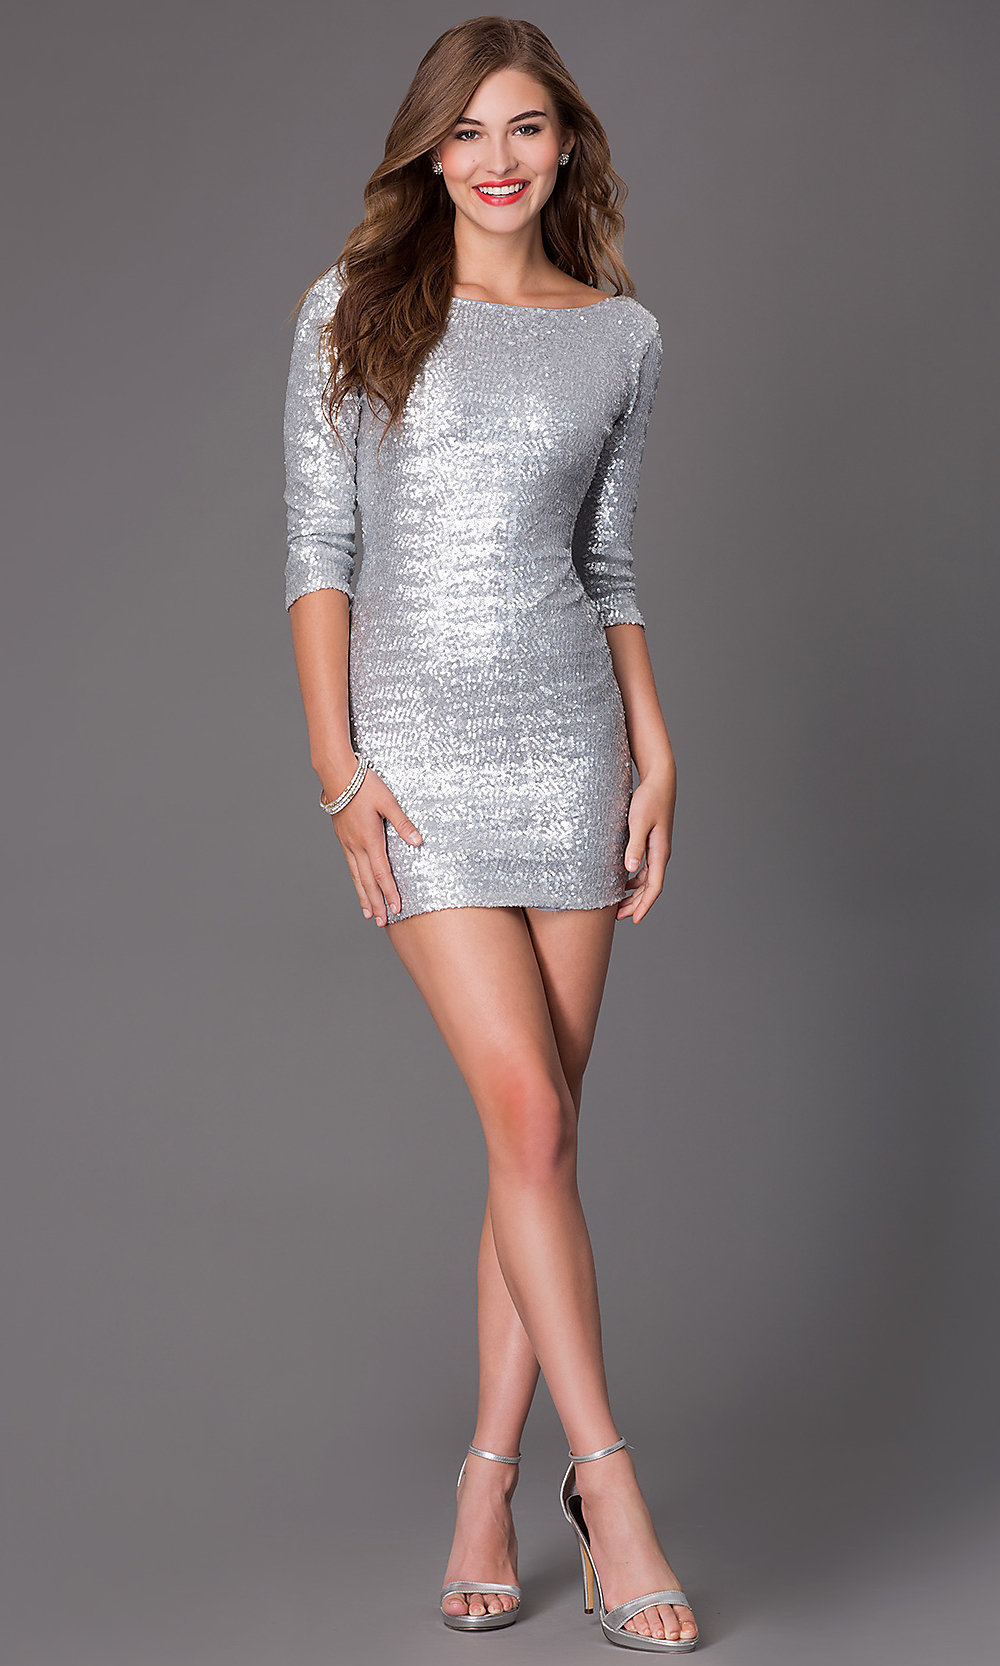 Images of Short Silver Sequin Dress - Reikian